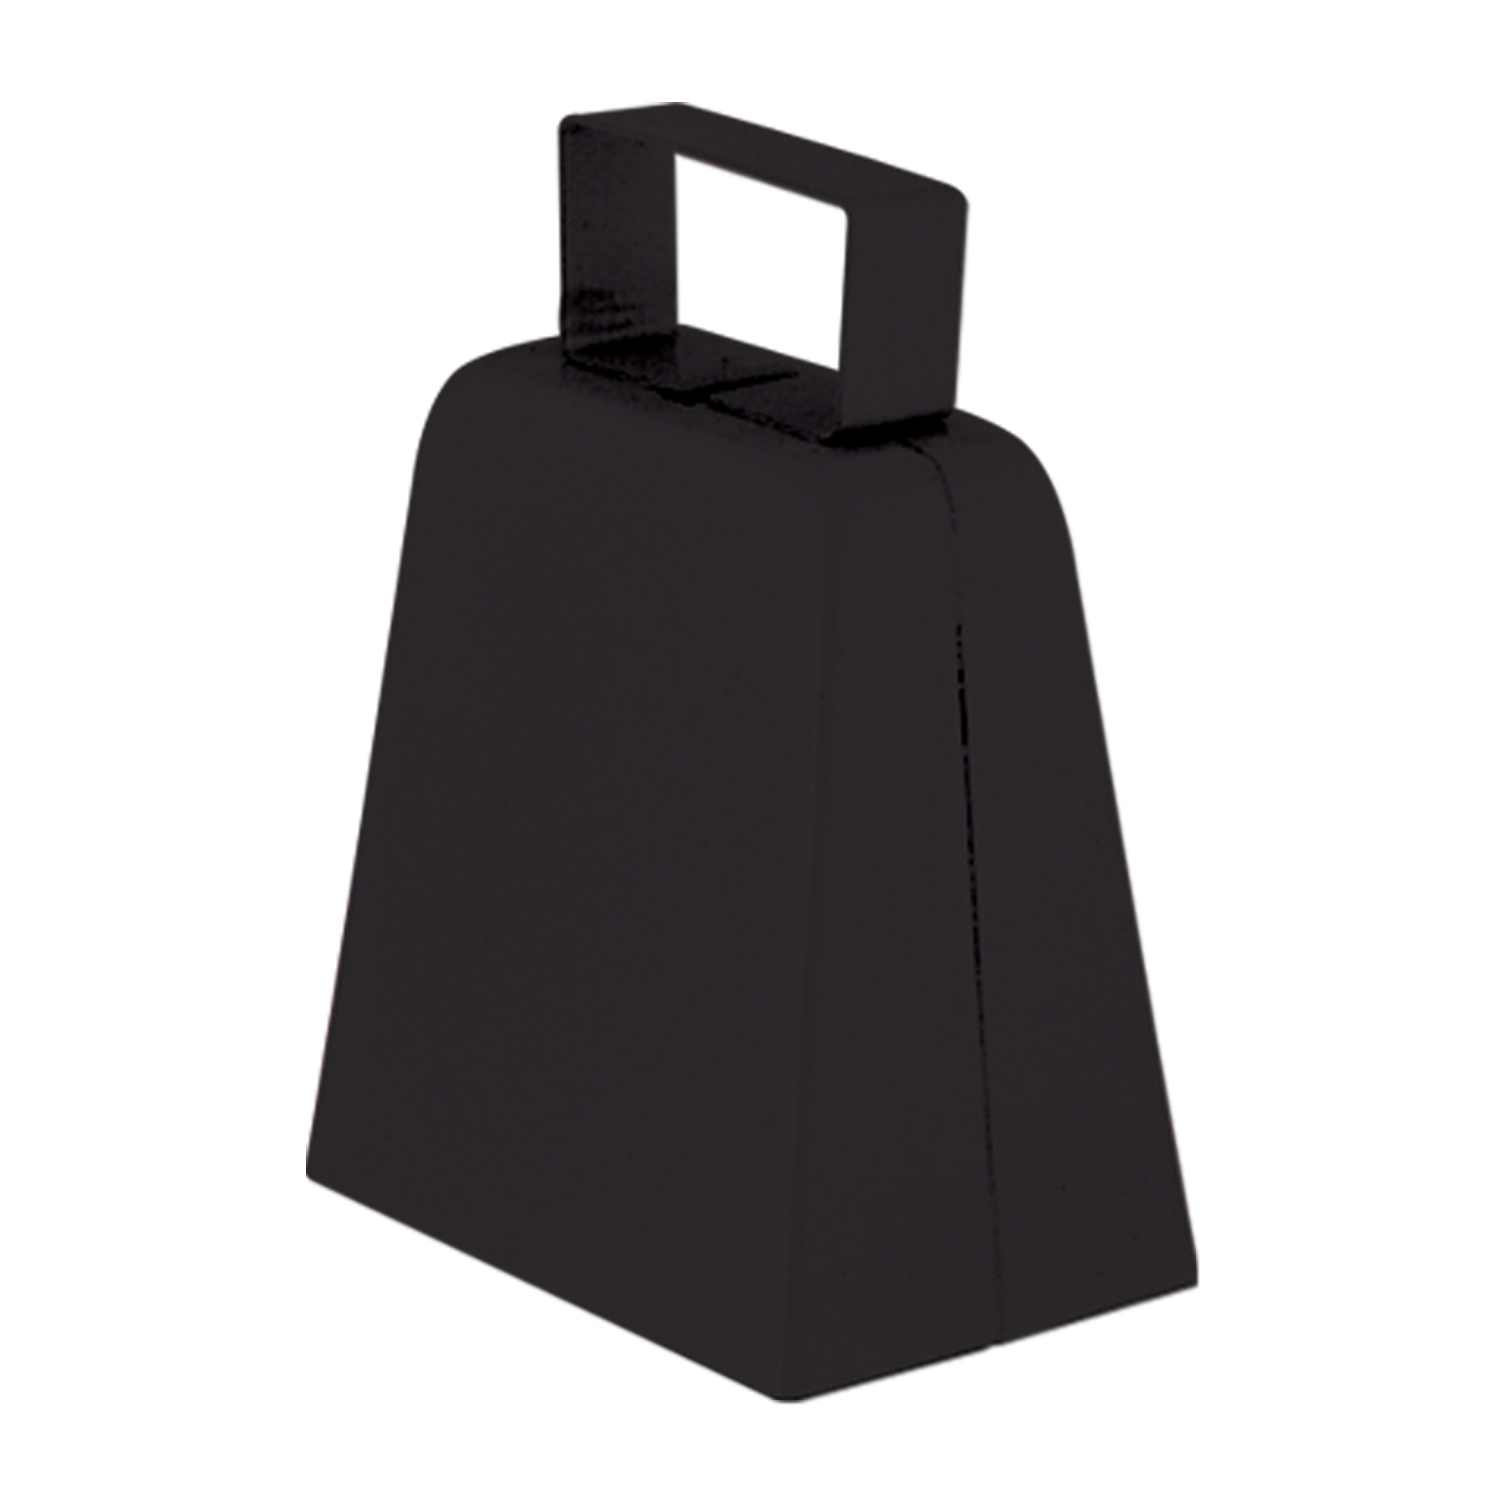 Cowbells (Pack of 12) cowbell, noisemaker, black, party, football, superbowl, playoffs, tailgating,